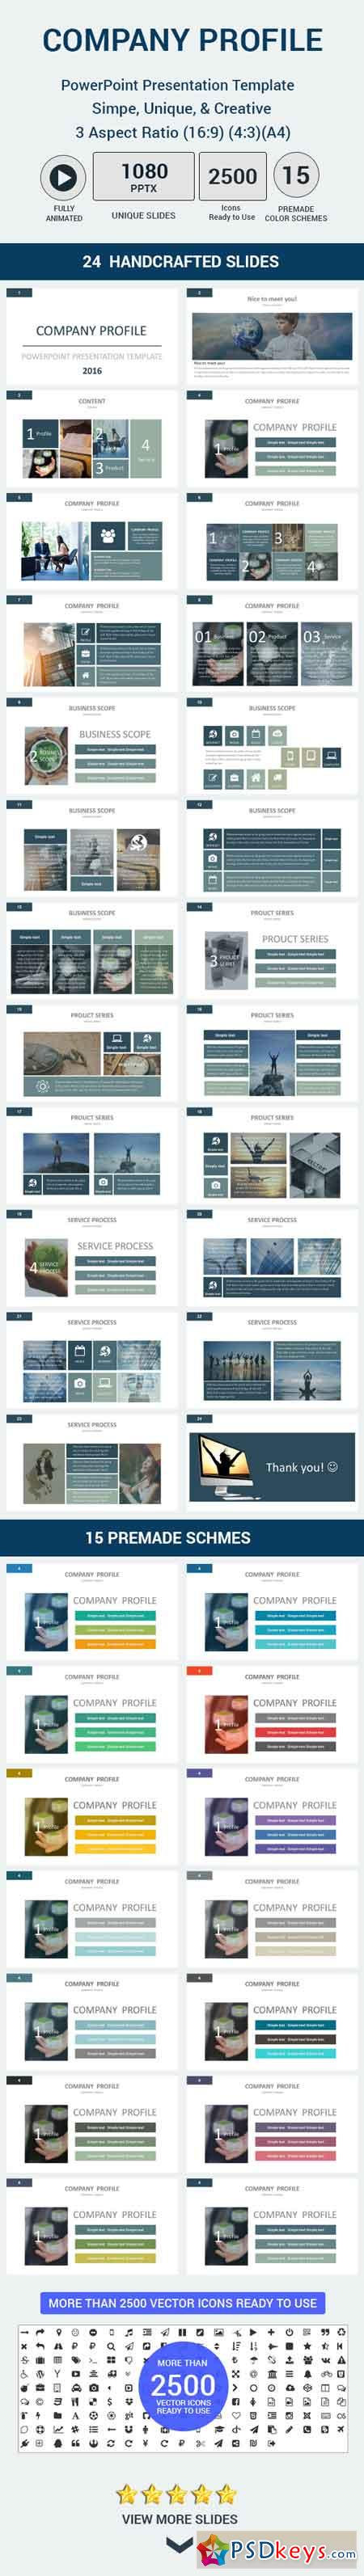 Company profile PowerPoint Presentation Template 15627807